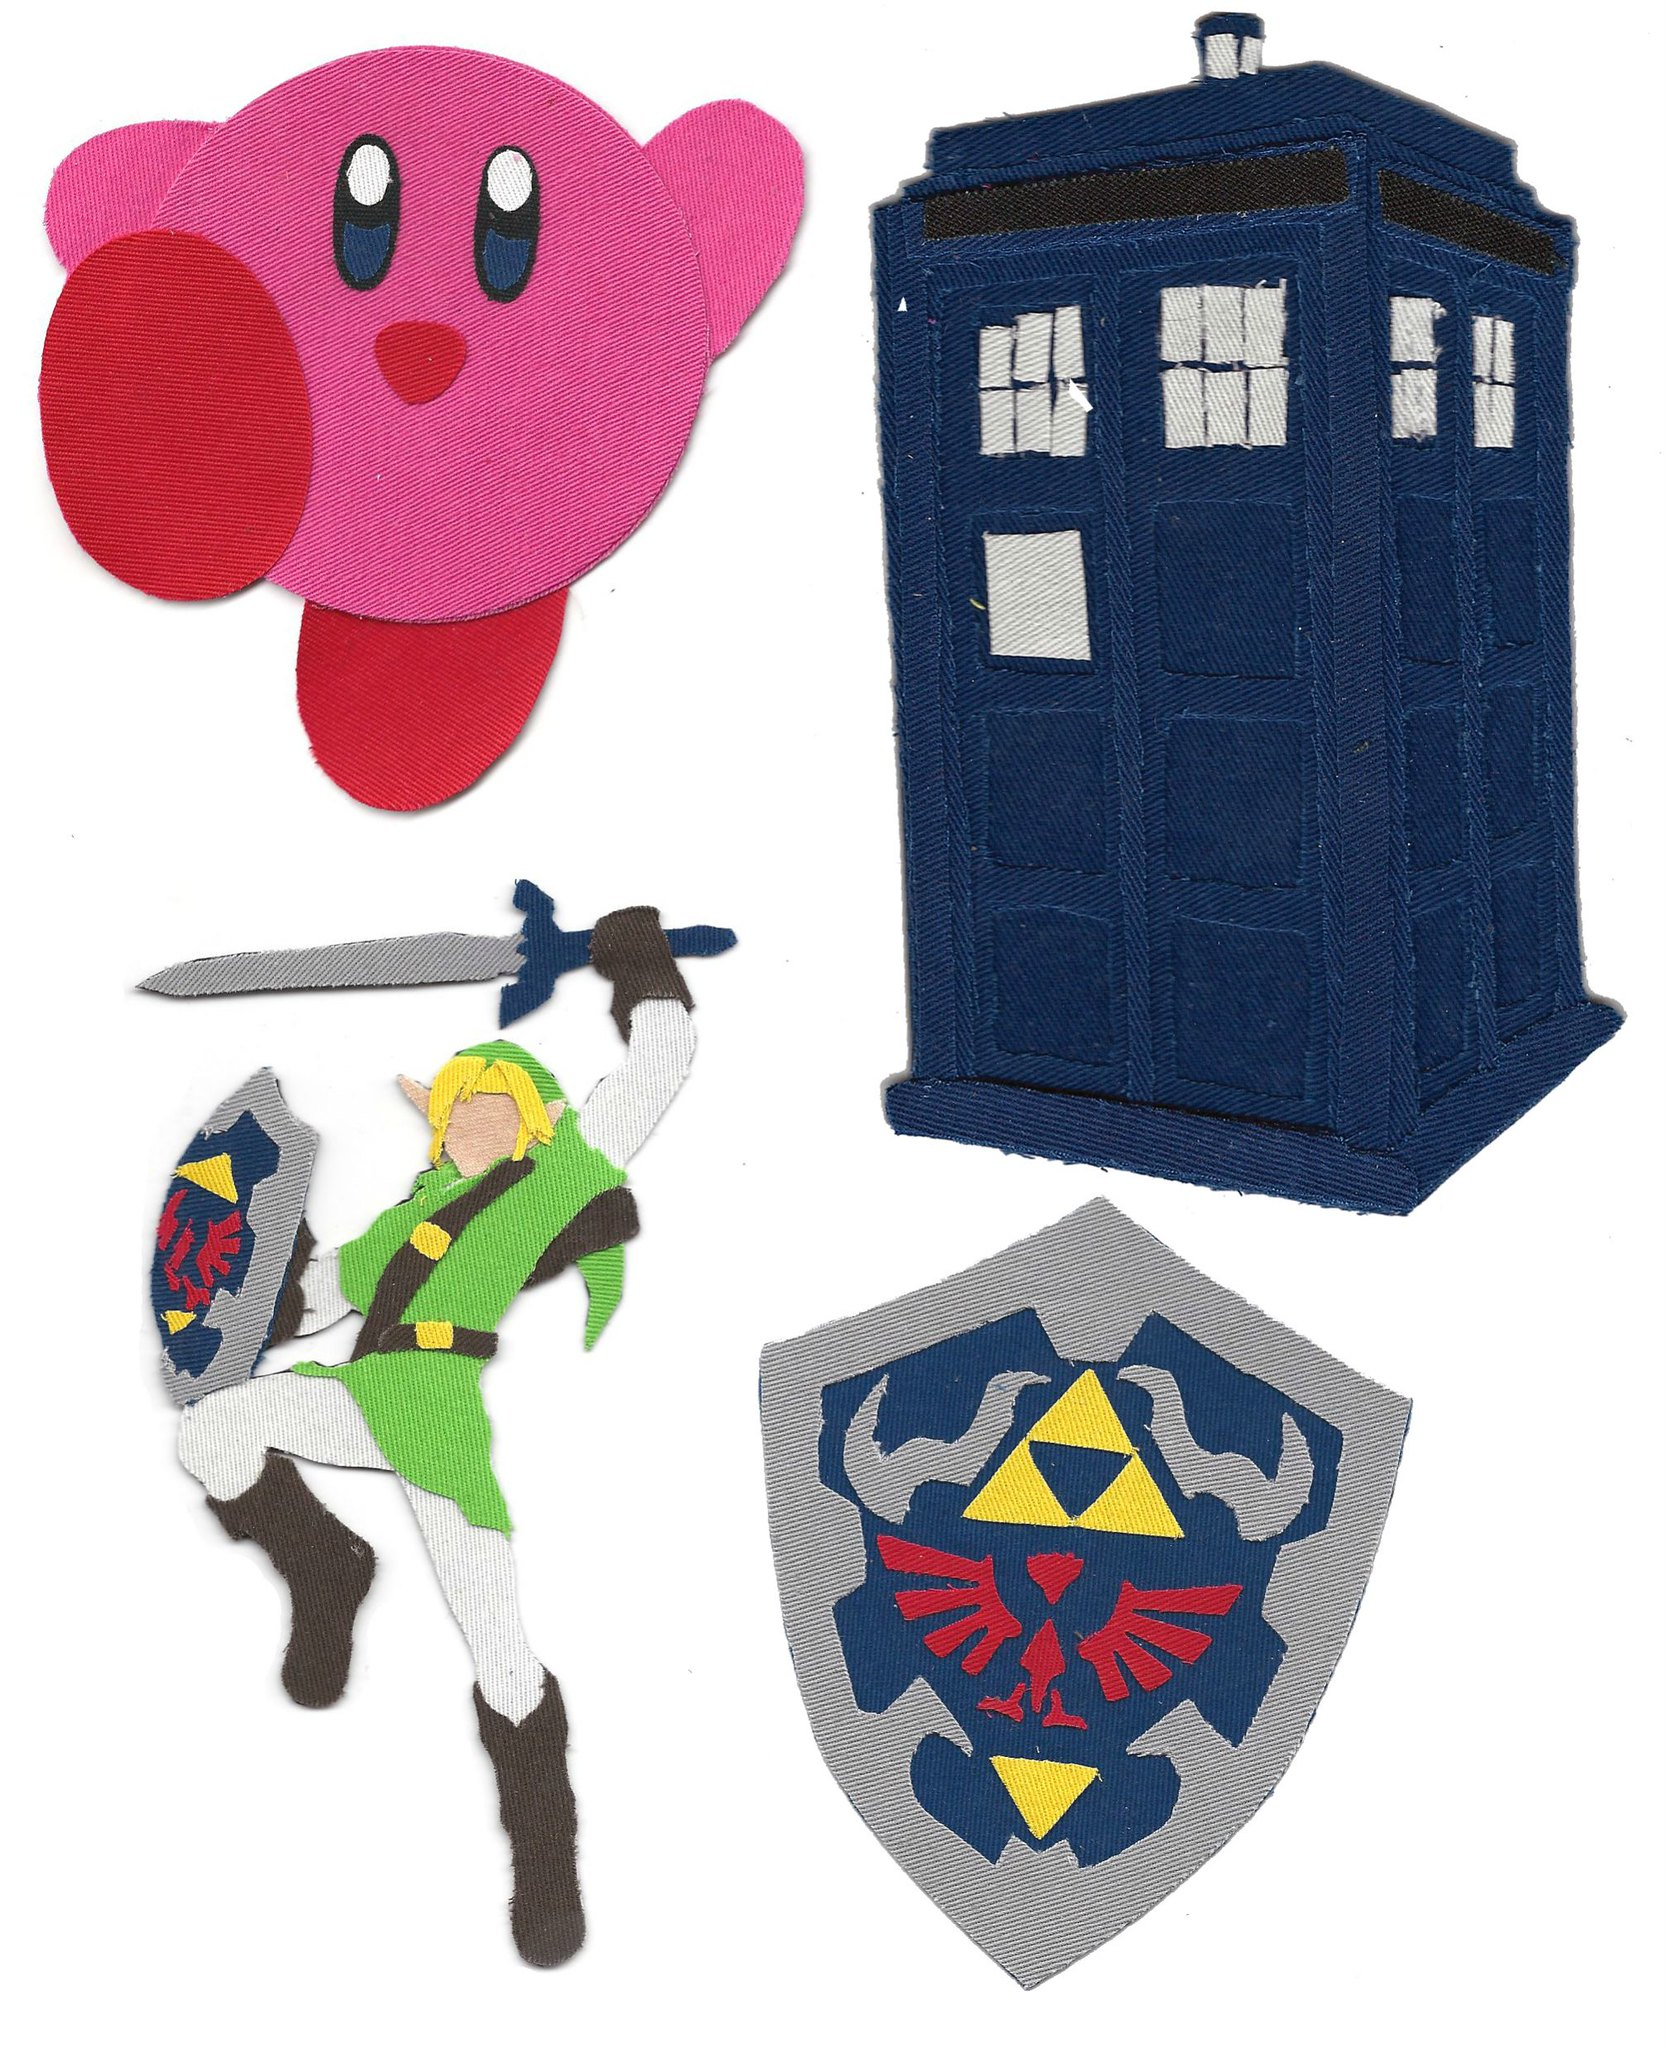 Fabric Pop Culture by Alysha Crist - Kirby, Legend of Zelda, Doctor Who TARDIS